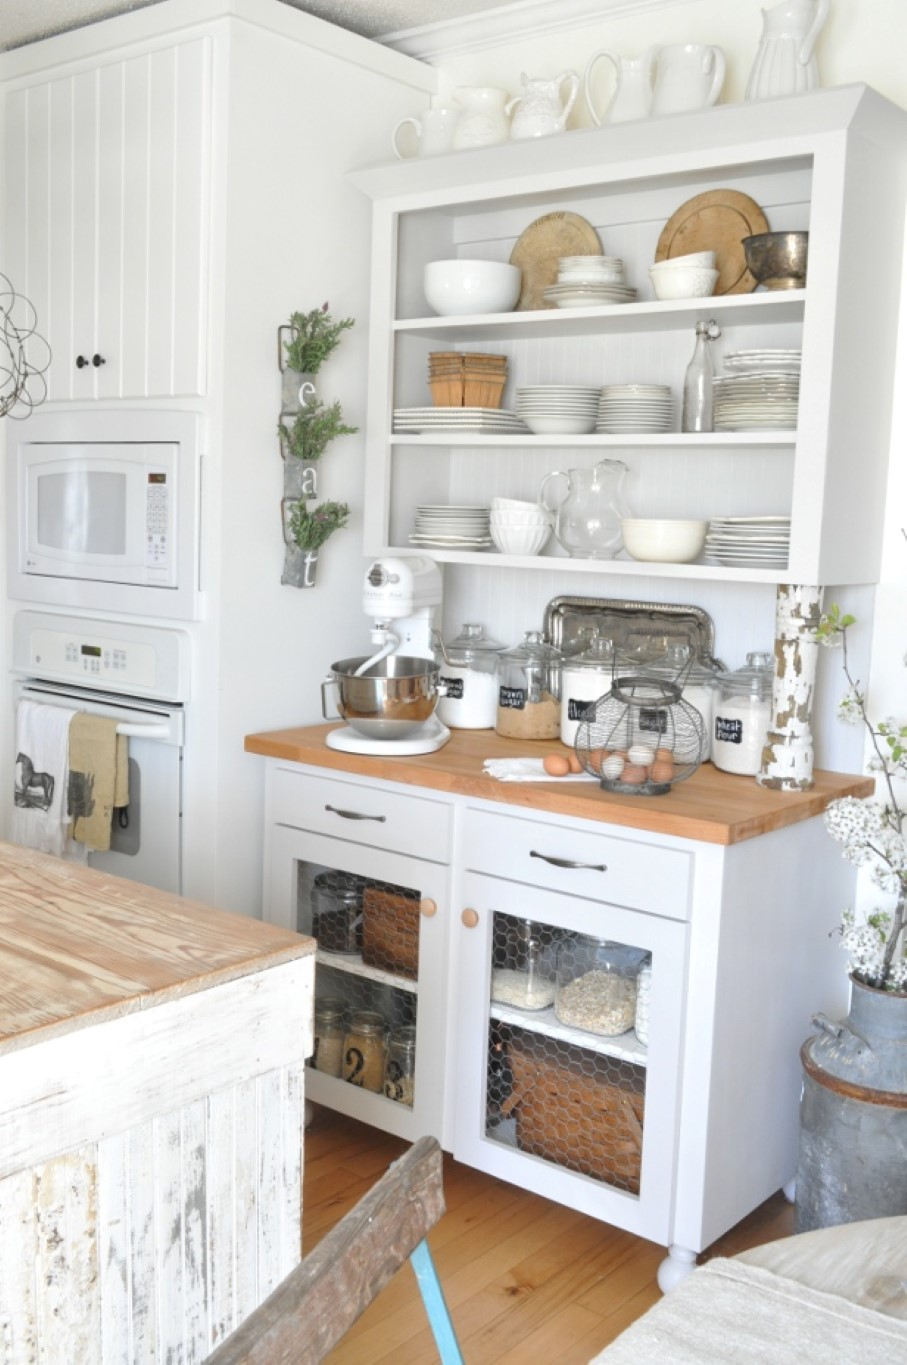 Go vintage with antique cabinet for chic kitchen homesfeed for Barn style kitchen cabinets